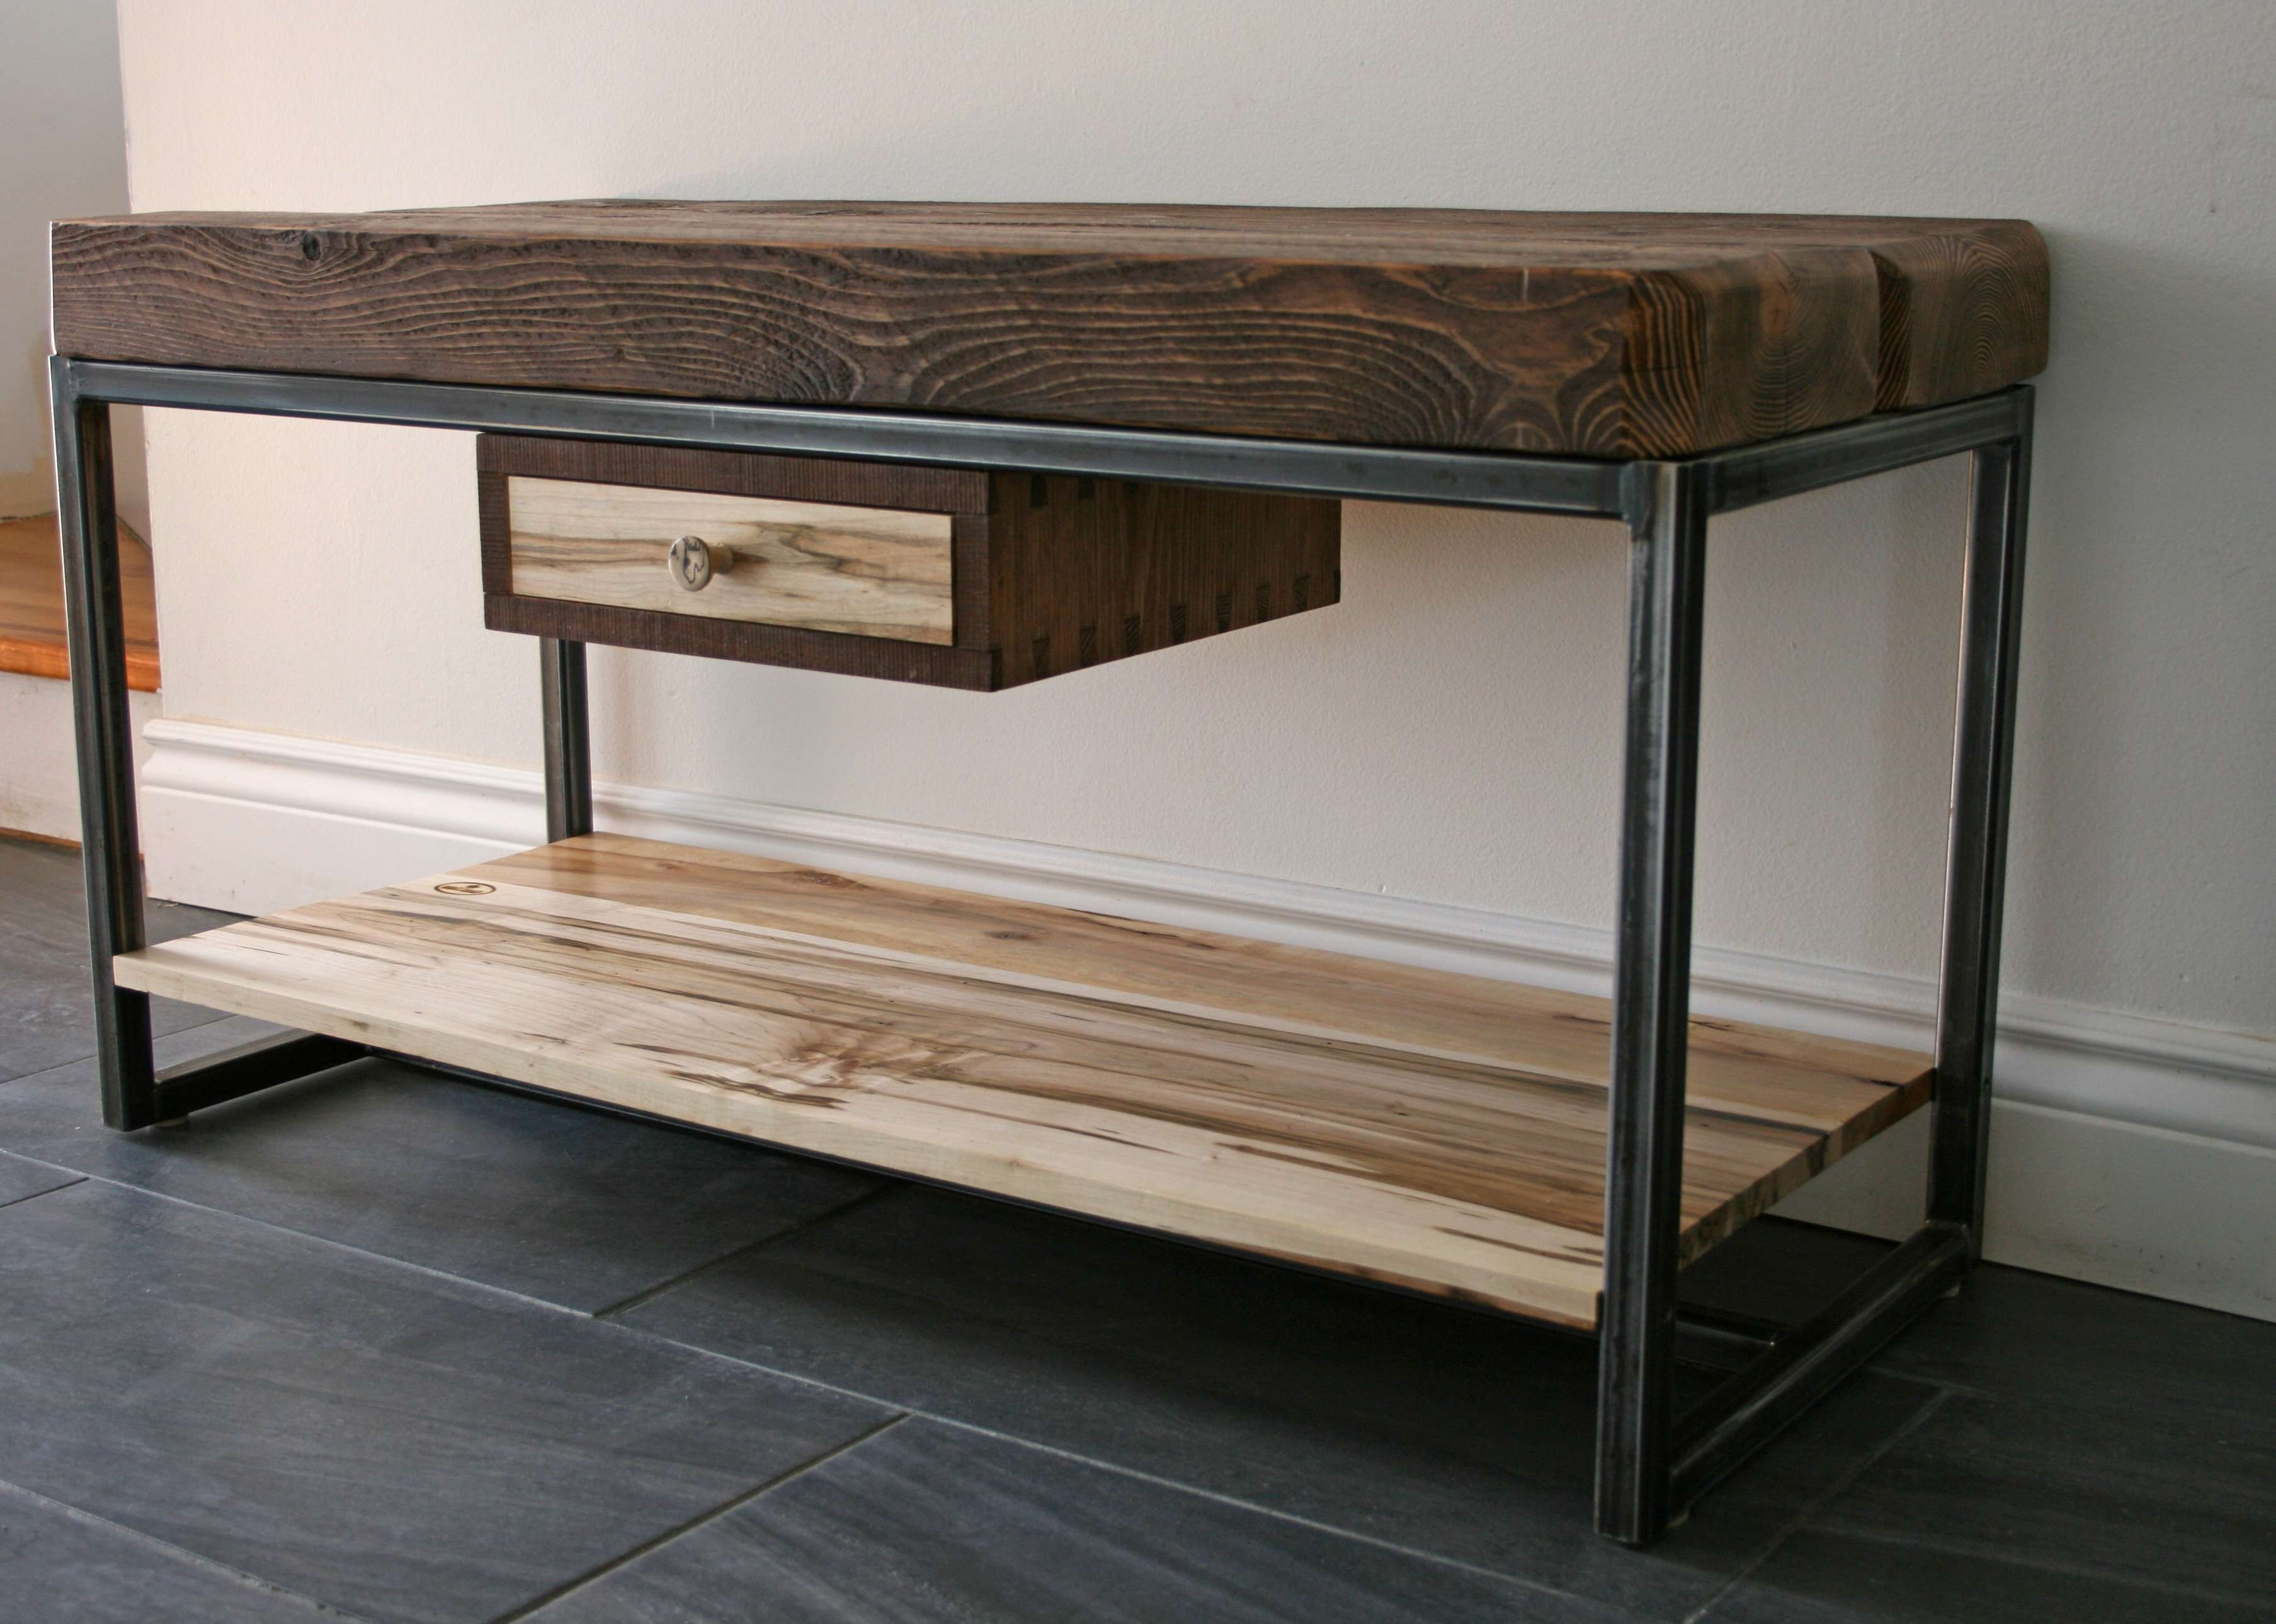 Hemlock And Wormy Maple Tv Stand | Second Nature Wood Design In Maple Tv Stands (View 10 of 15)